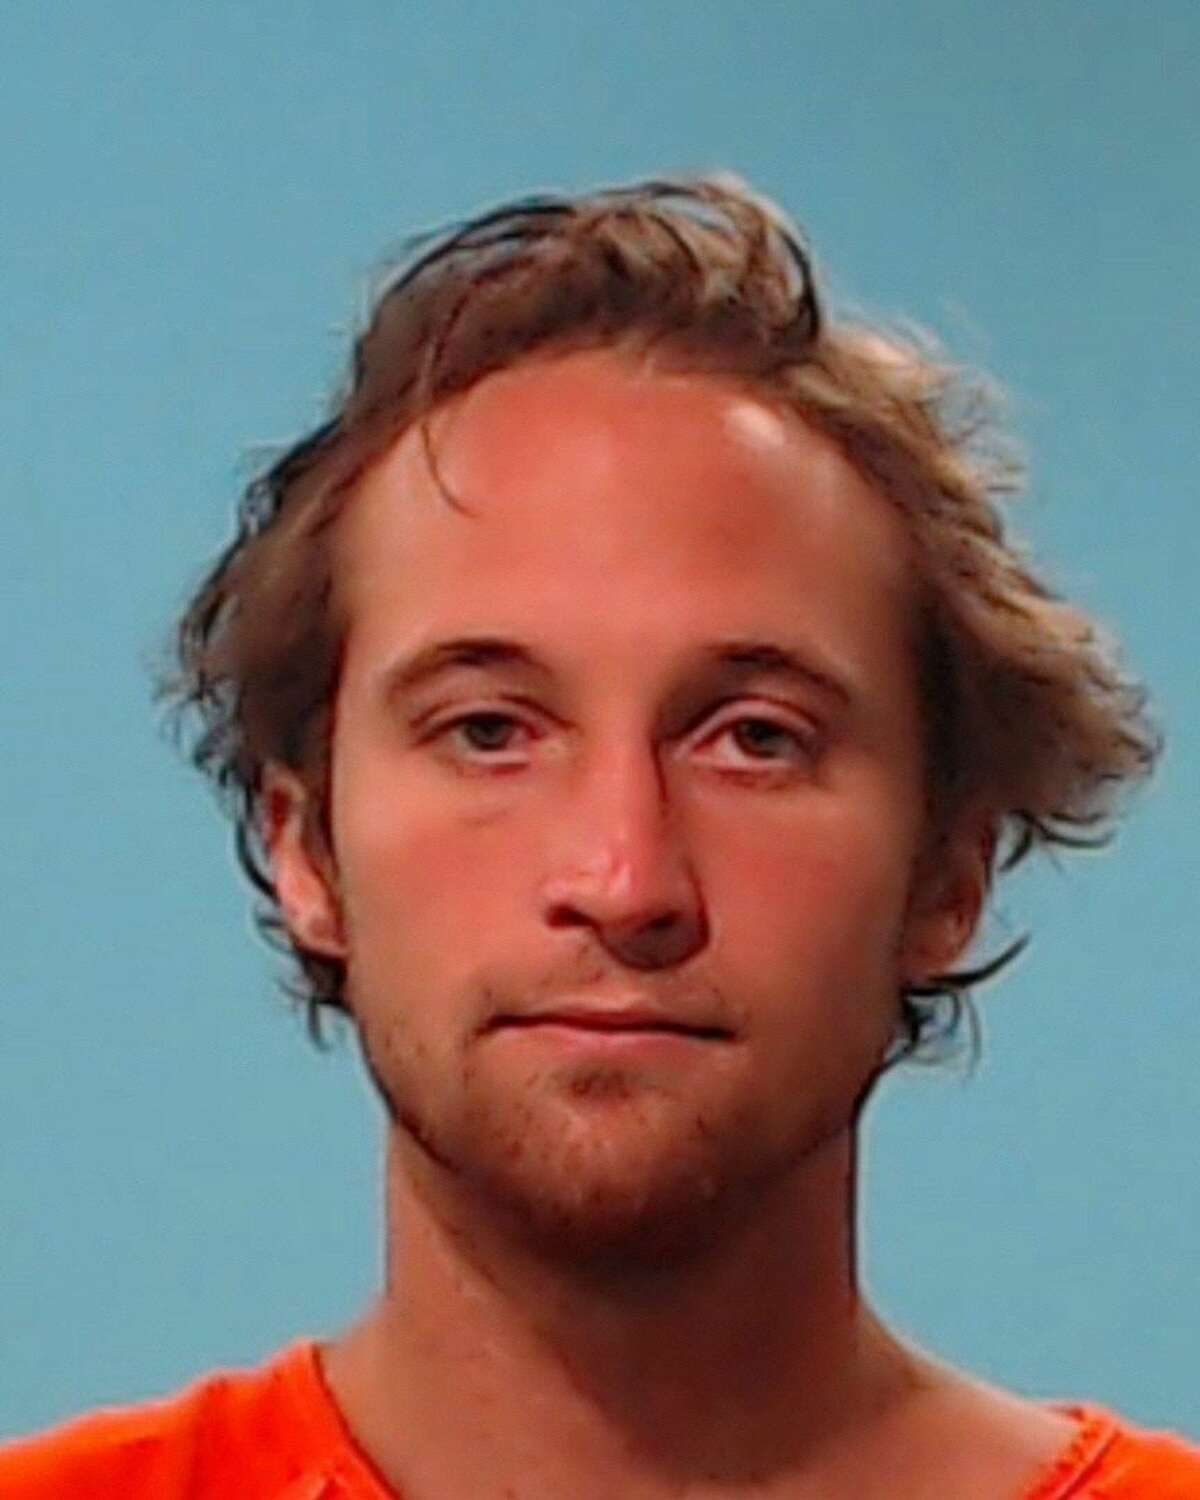 Freeport resident Thomas Ray Newman, 25, was being held at the Brazoria County Jail on felony charges of car theft when he briefly escaped custody Wednesday (Nov. 25). The incident remains under investigation while jail officials review protocols and procedures.